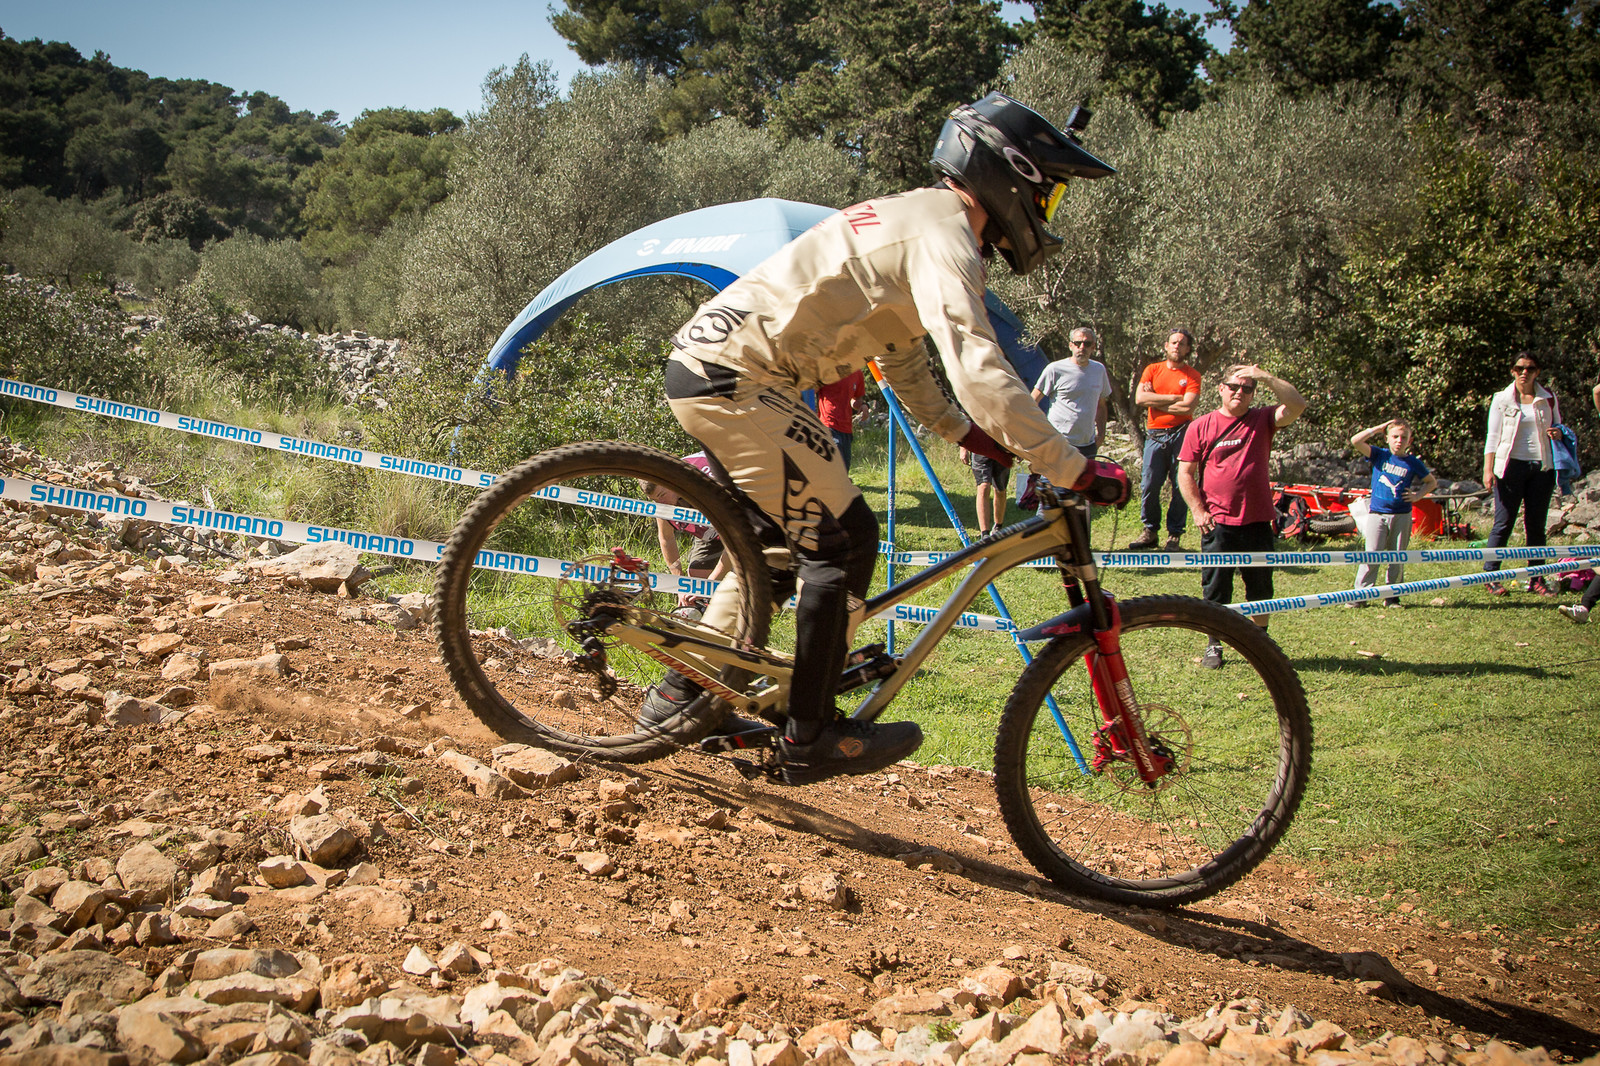 Commencal Supreme DH 29 G-Out - G-Out Project - Croatia World Cup DH - Mountain Biking Pictures - Vital MTB